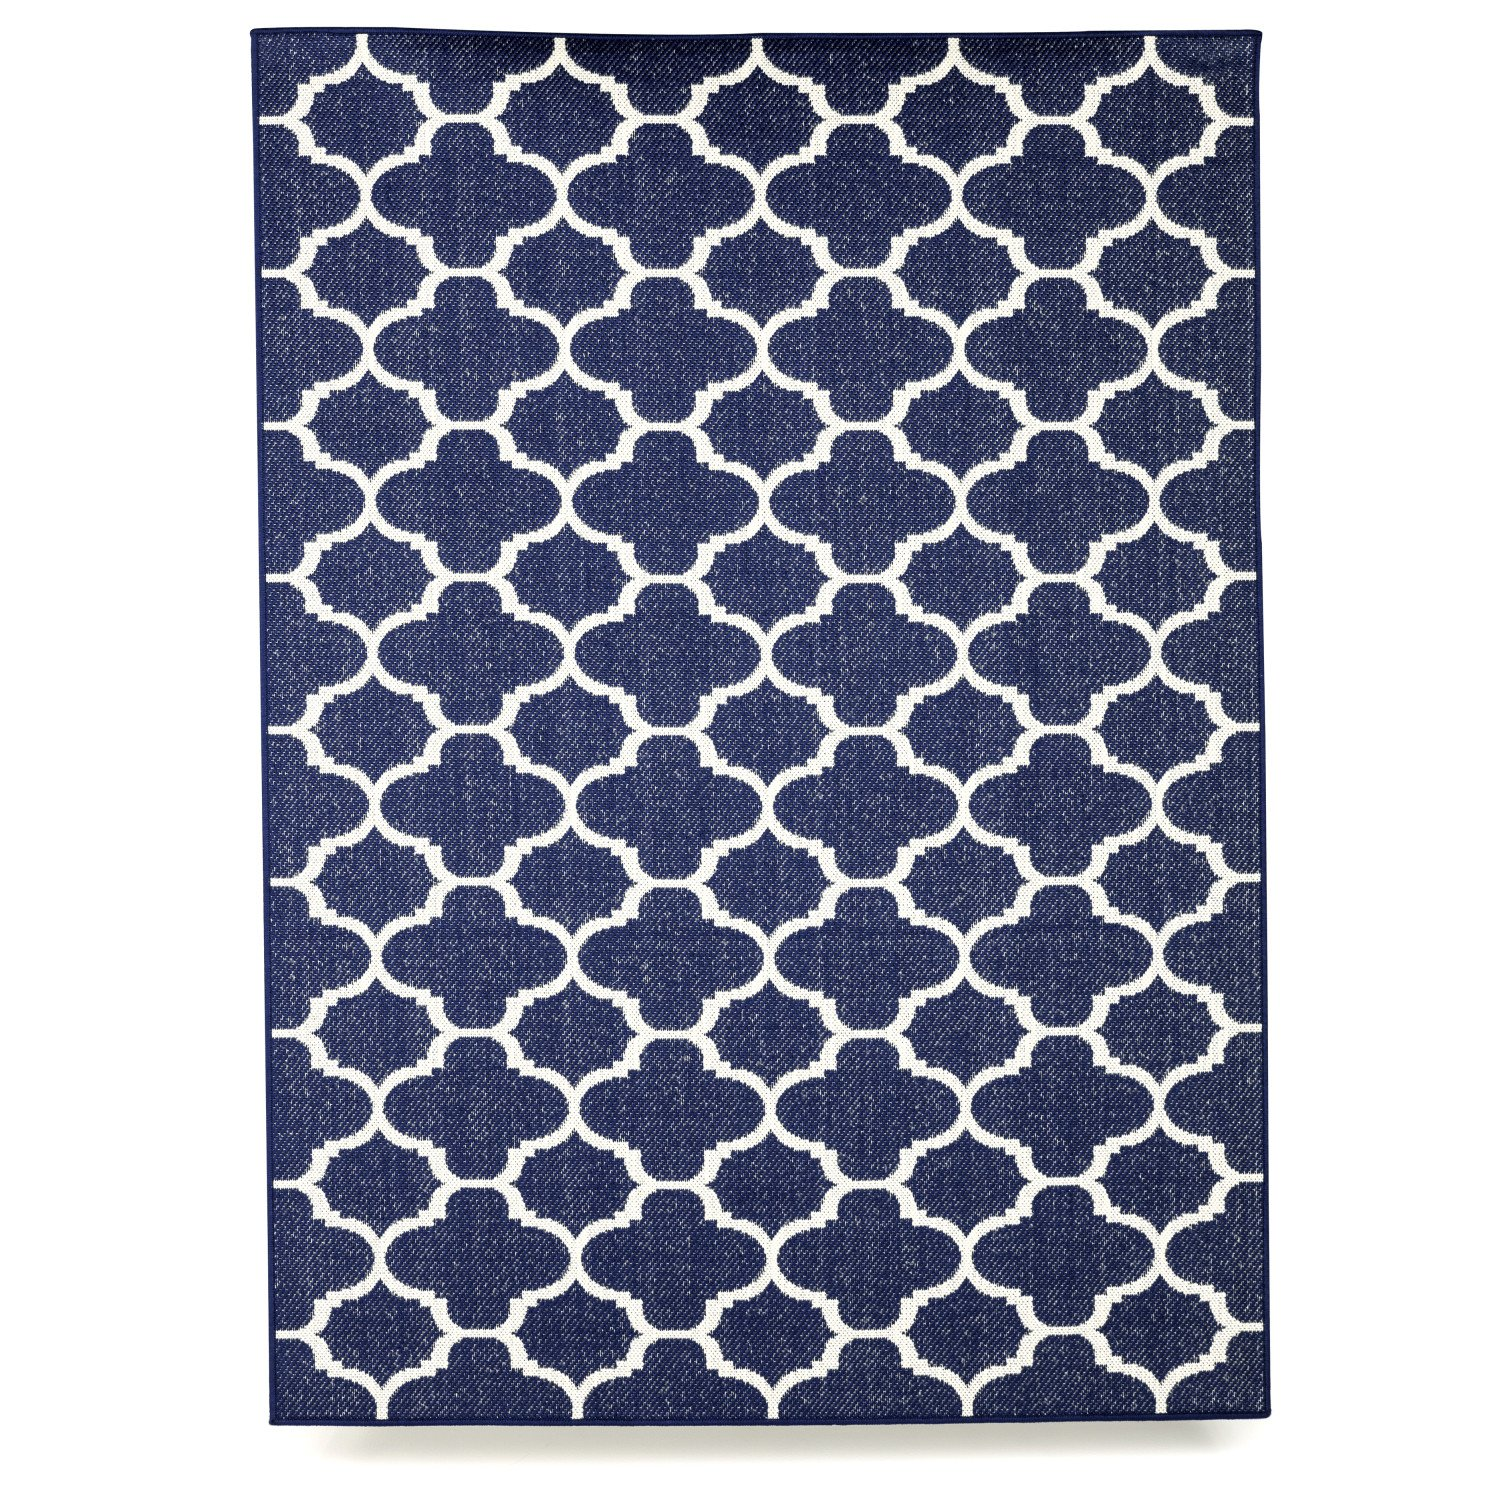 Budge Winchester Outdoor Patio Rug, RUG810RB3 (8' Long x 10' Wide, Royal Blue)